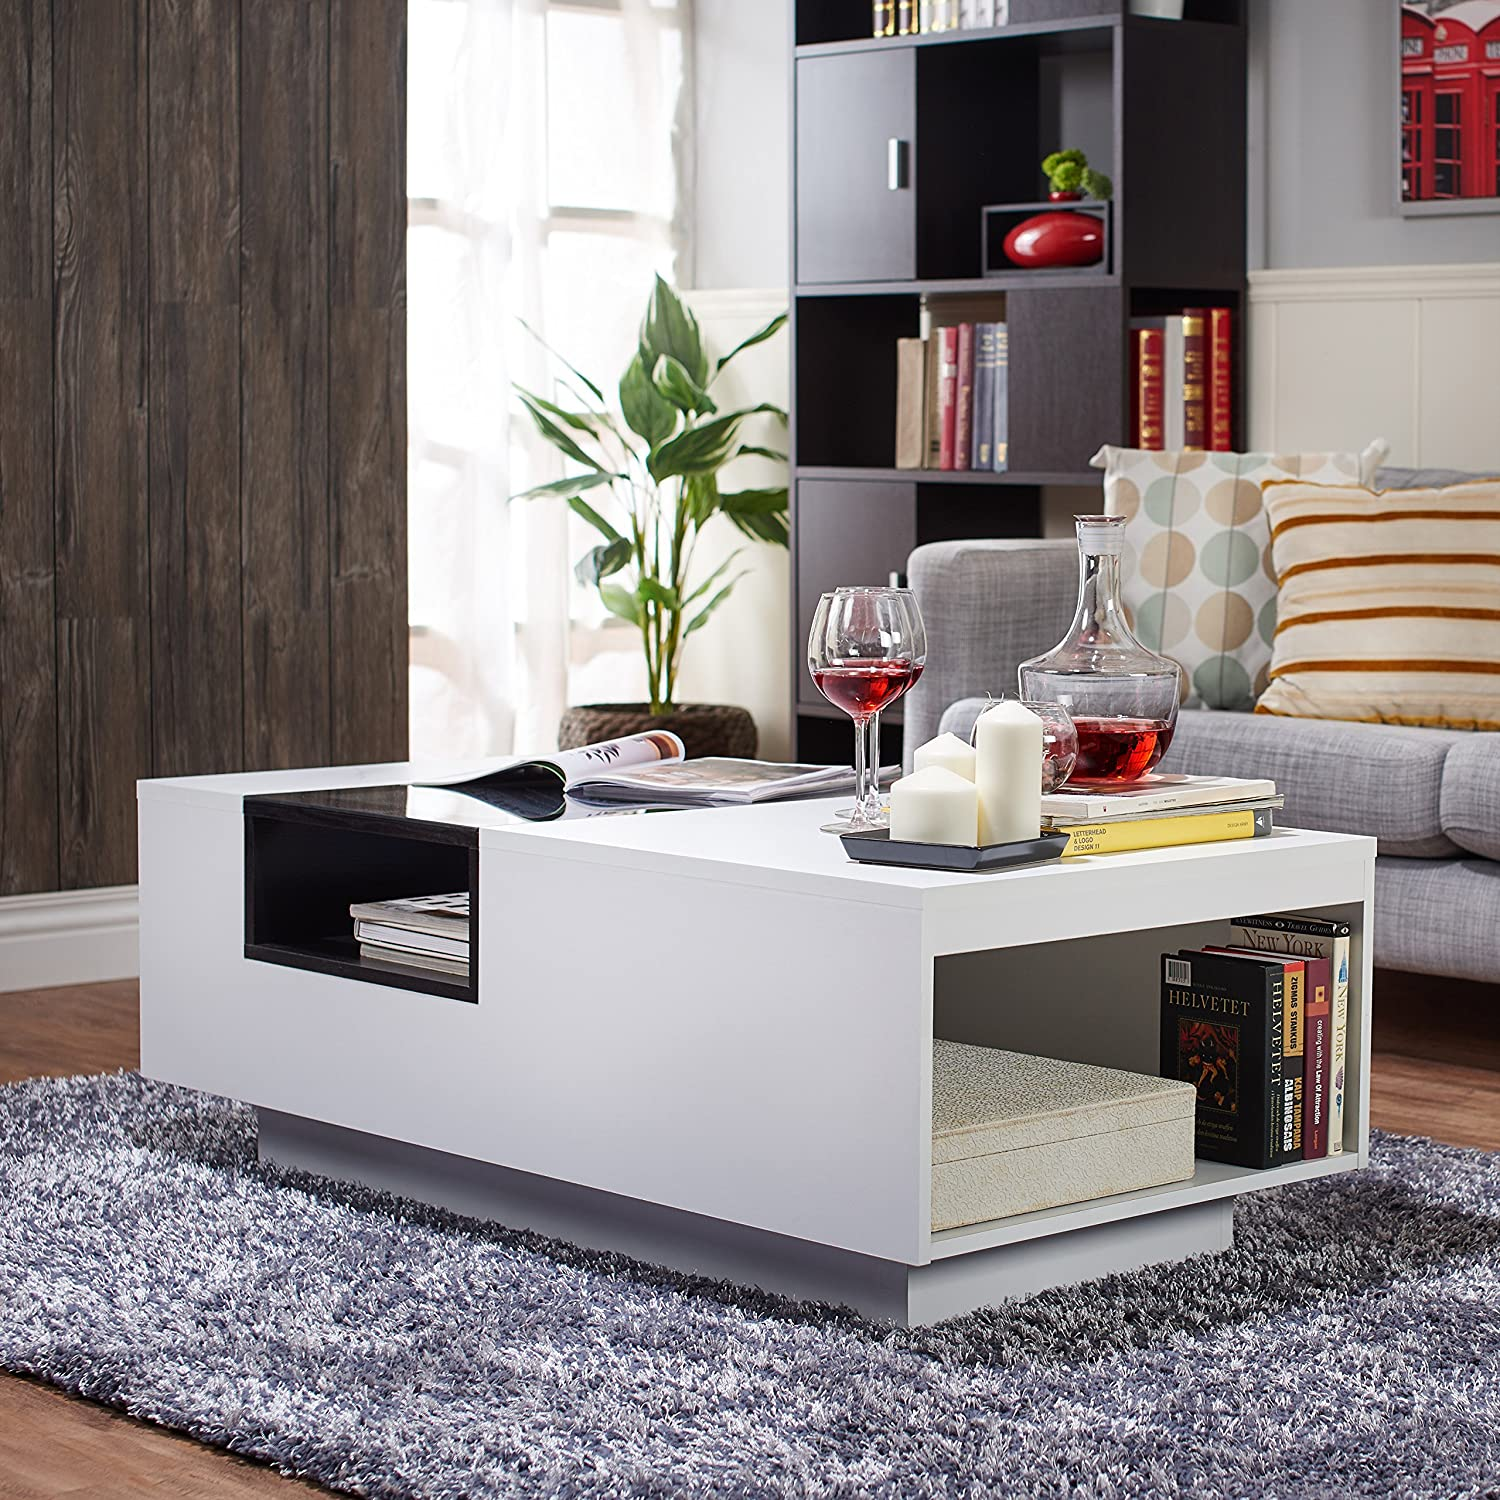 amazon com iohomes dekker modern coffee table white kitchen